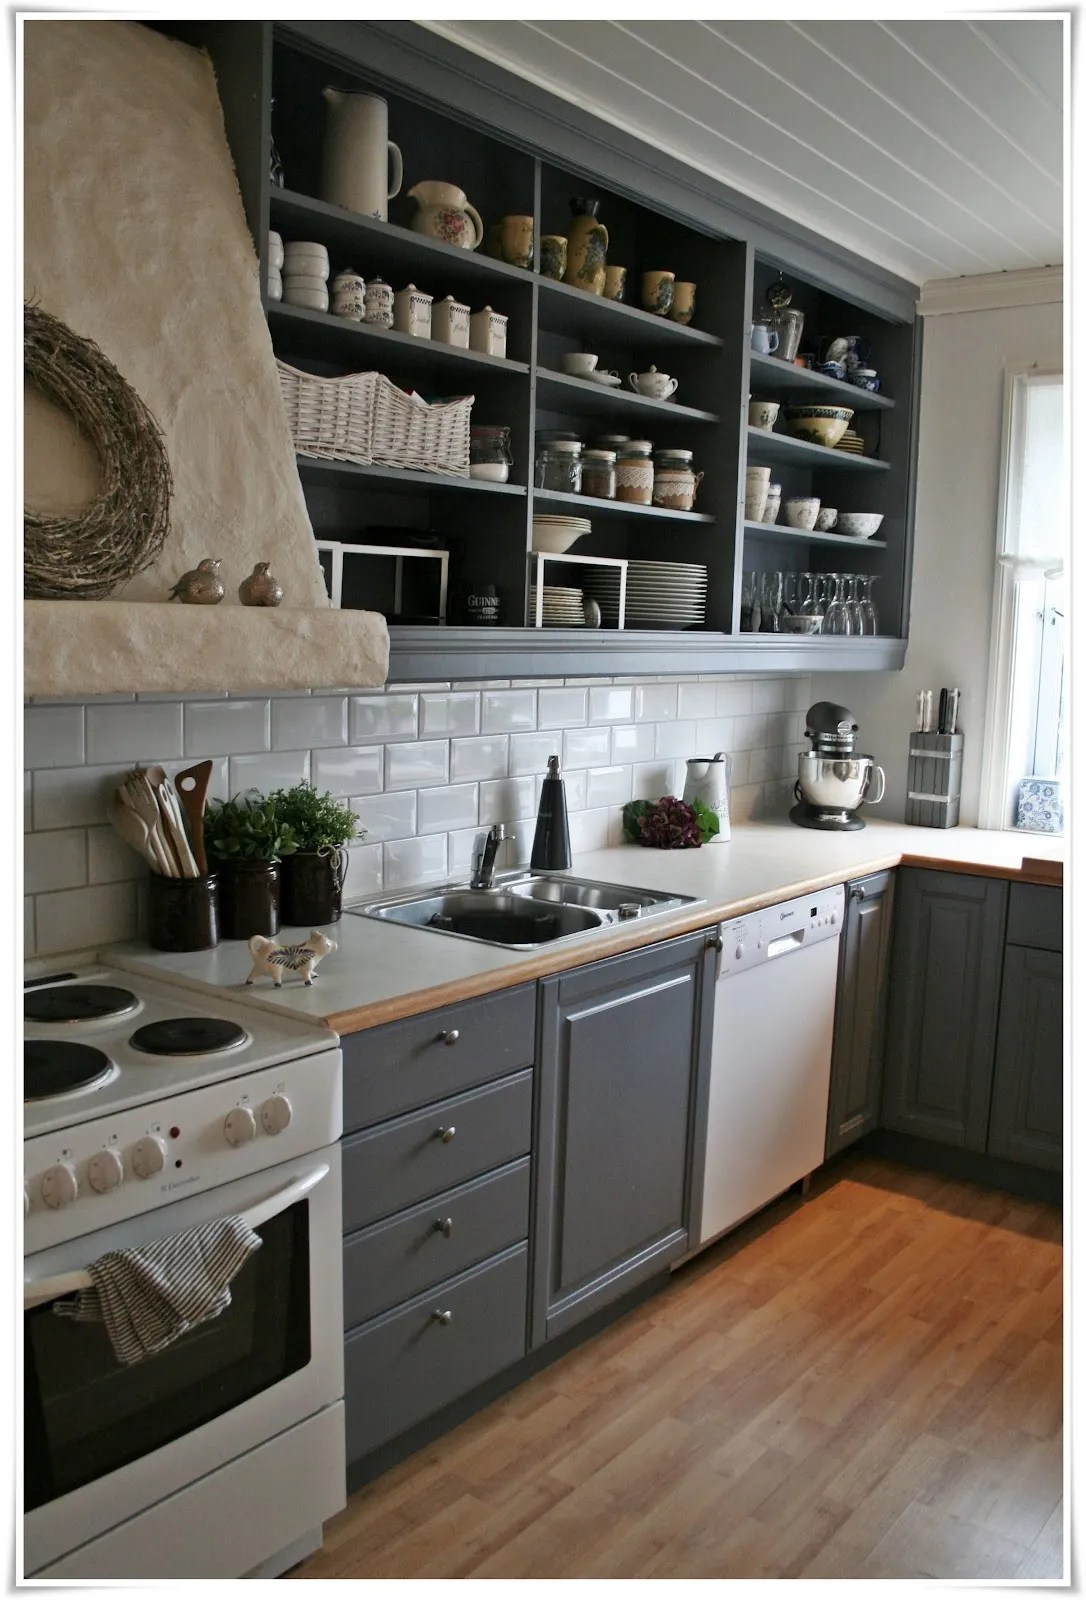 26 kitchen open shelves ideas - decoholic